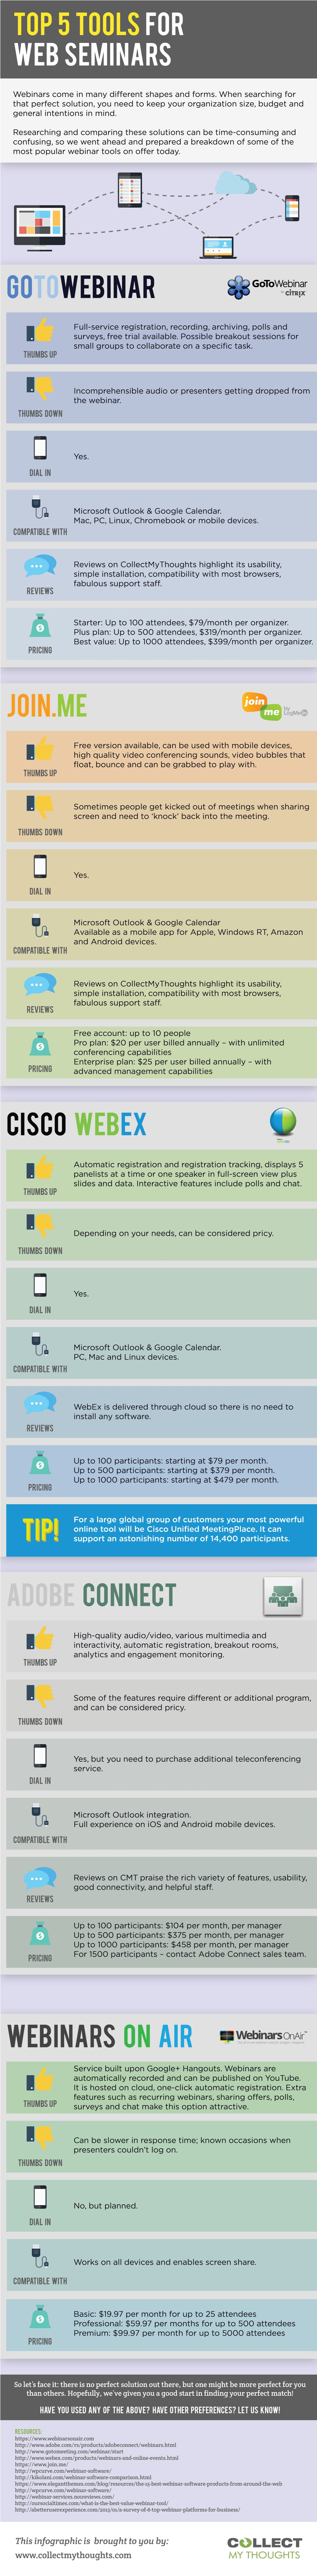 Top 5 Tools for Web Seminars Infographic